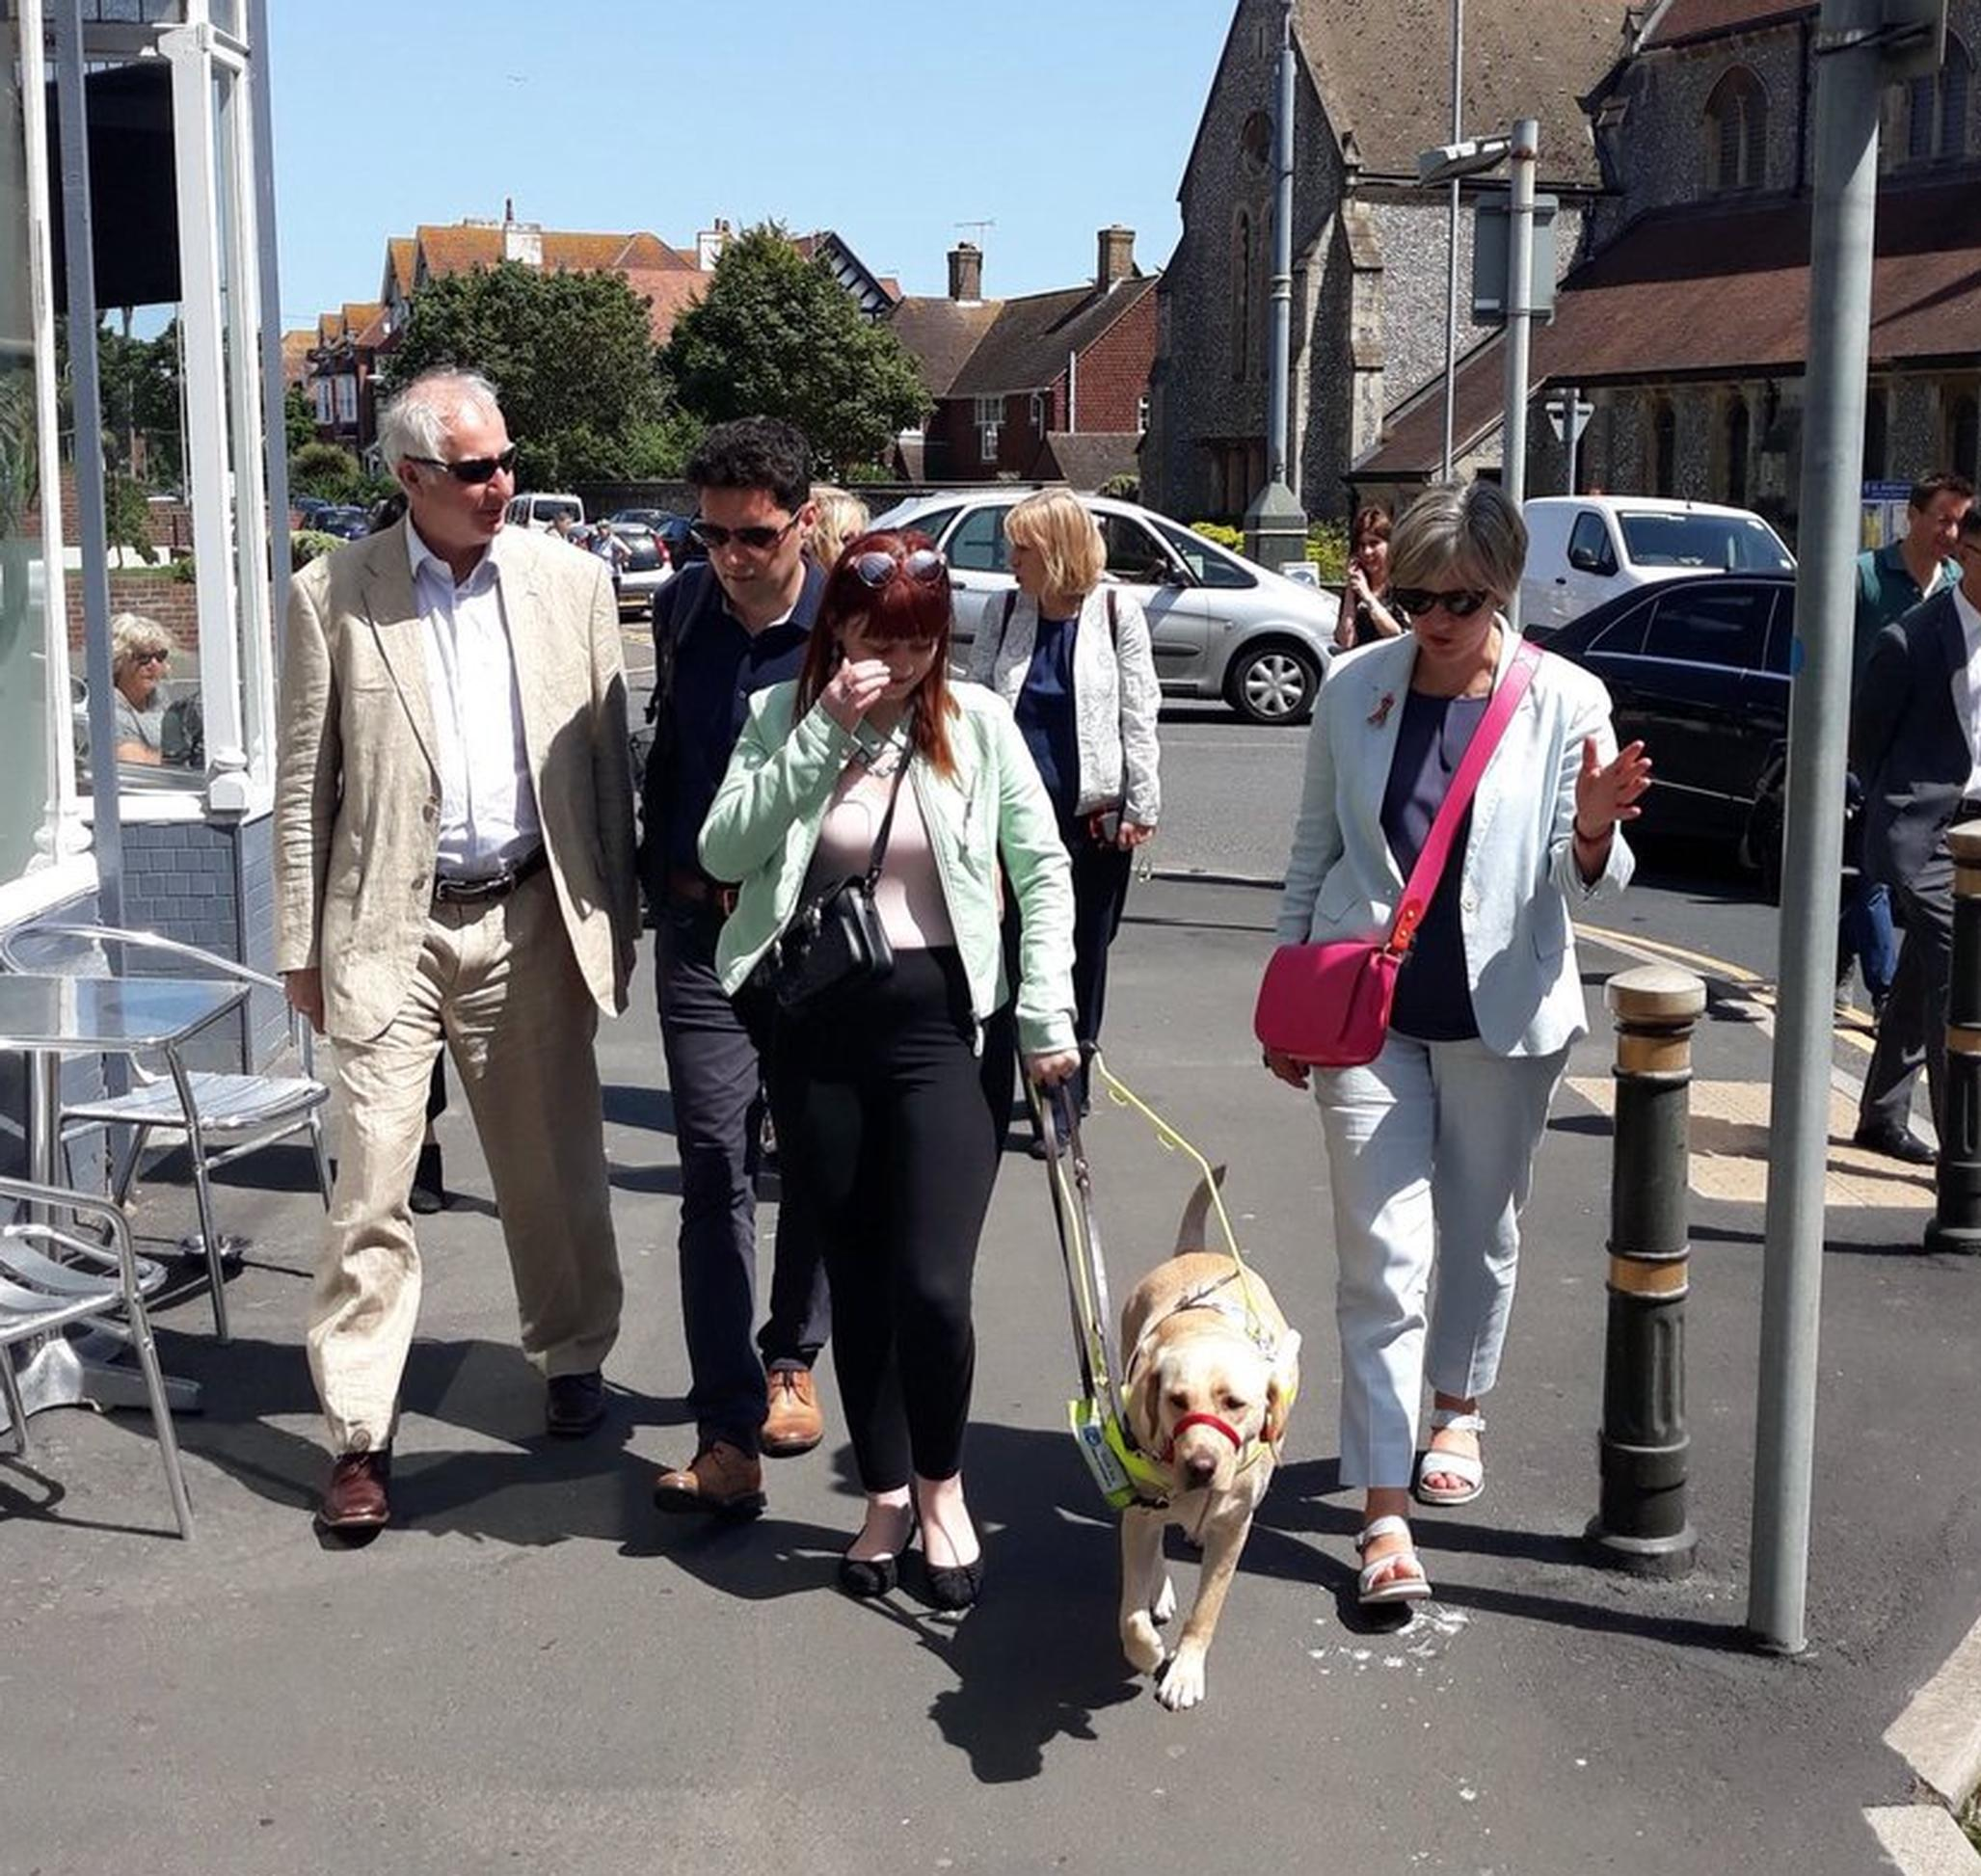 Members of the Transport Committee were shown around Bexhill-on-Sea by a blind person and her guide dog